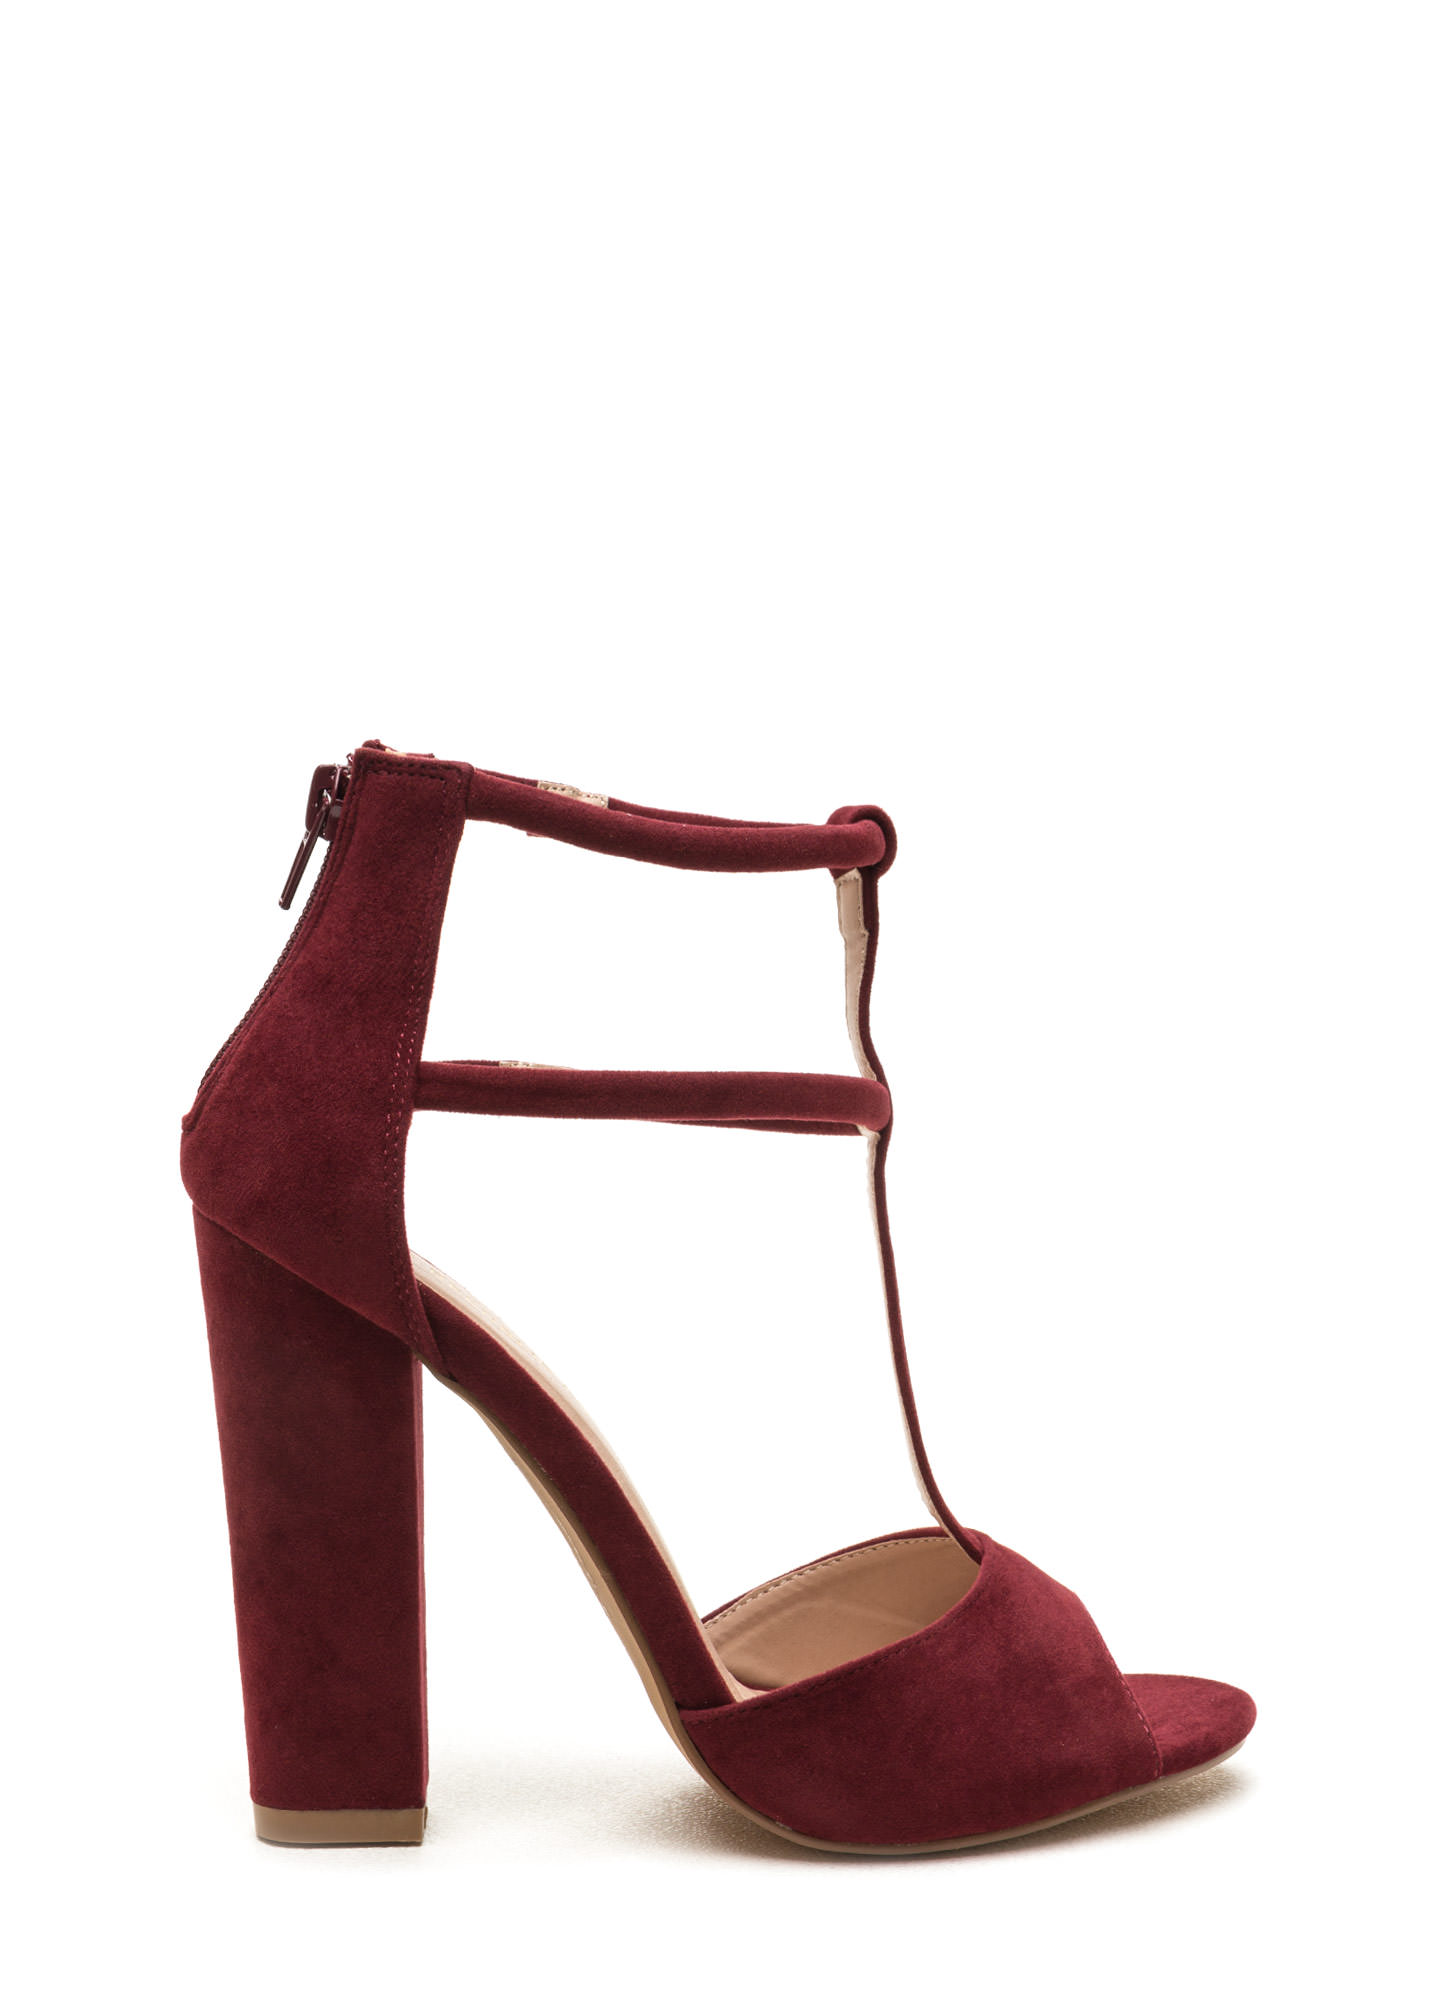 All Night Long Chunky Caged Heels BURGUNDY